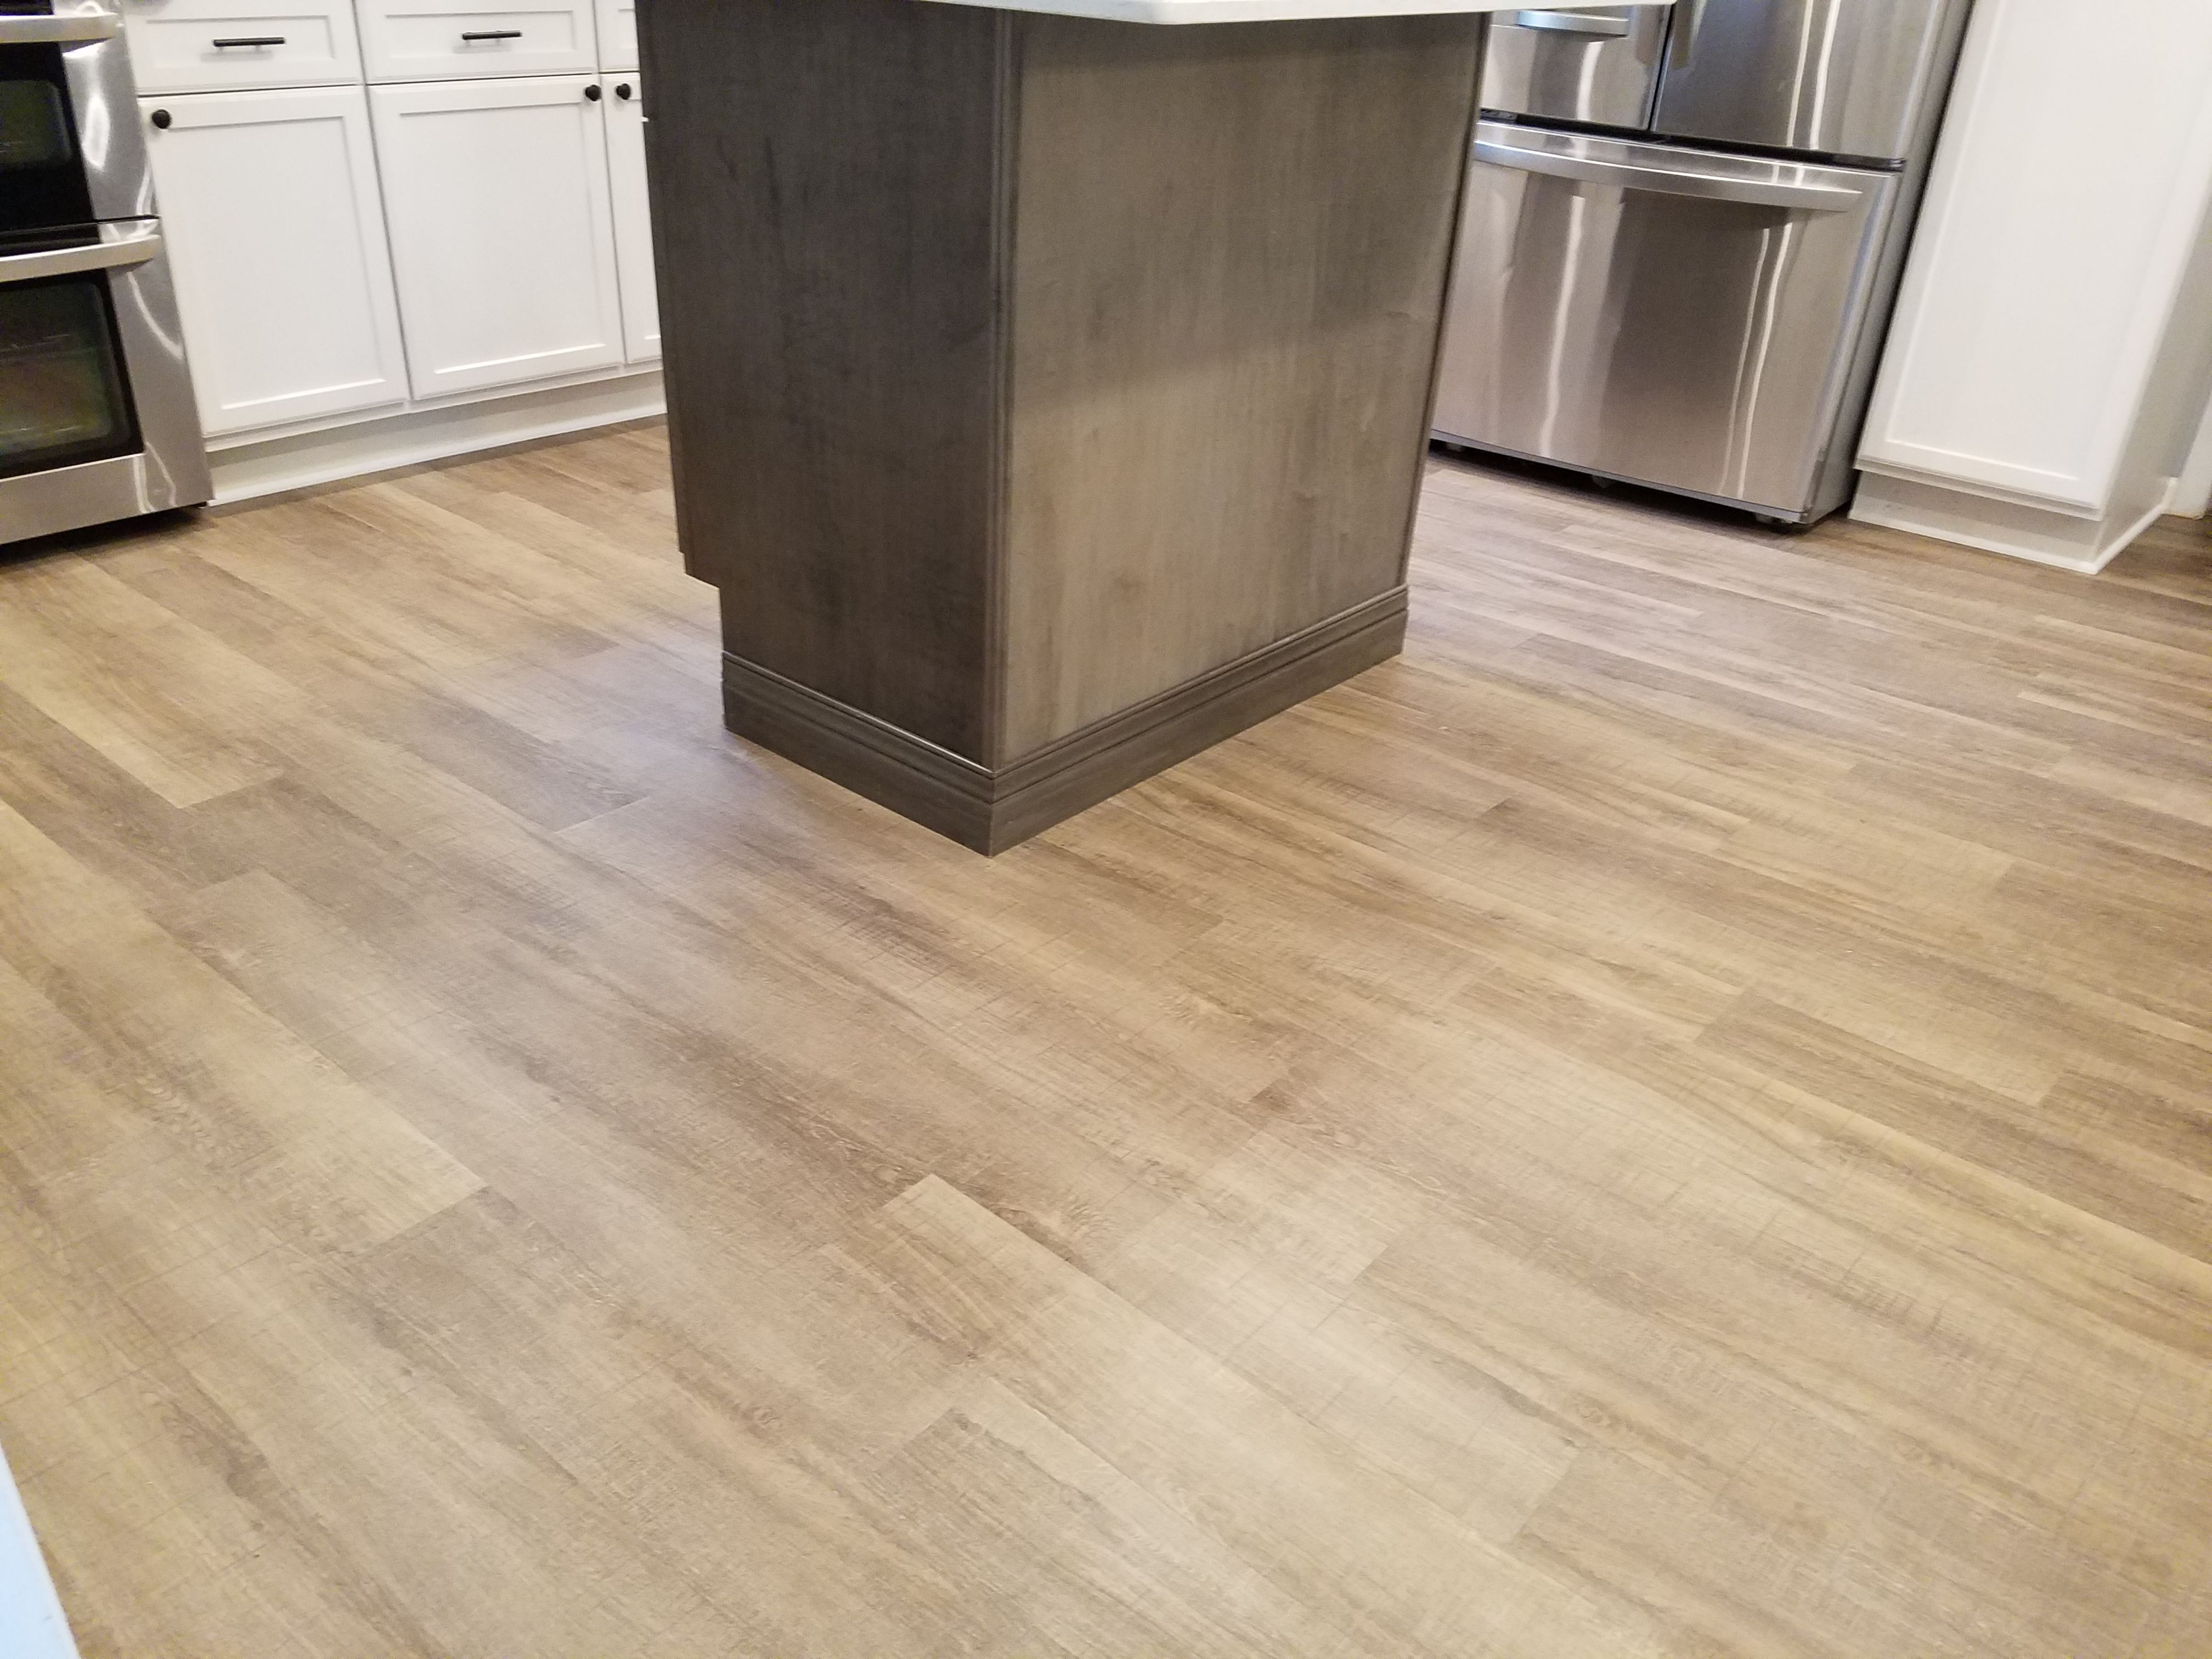 vs and clean cleaning shaw icore room care cost mannington plank depot luxury floors floor to flooring decor waterproof how allure home reviews installation laminate maintenance ultra designs vinyl